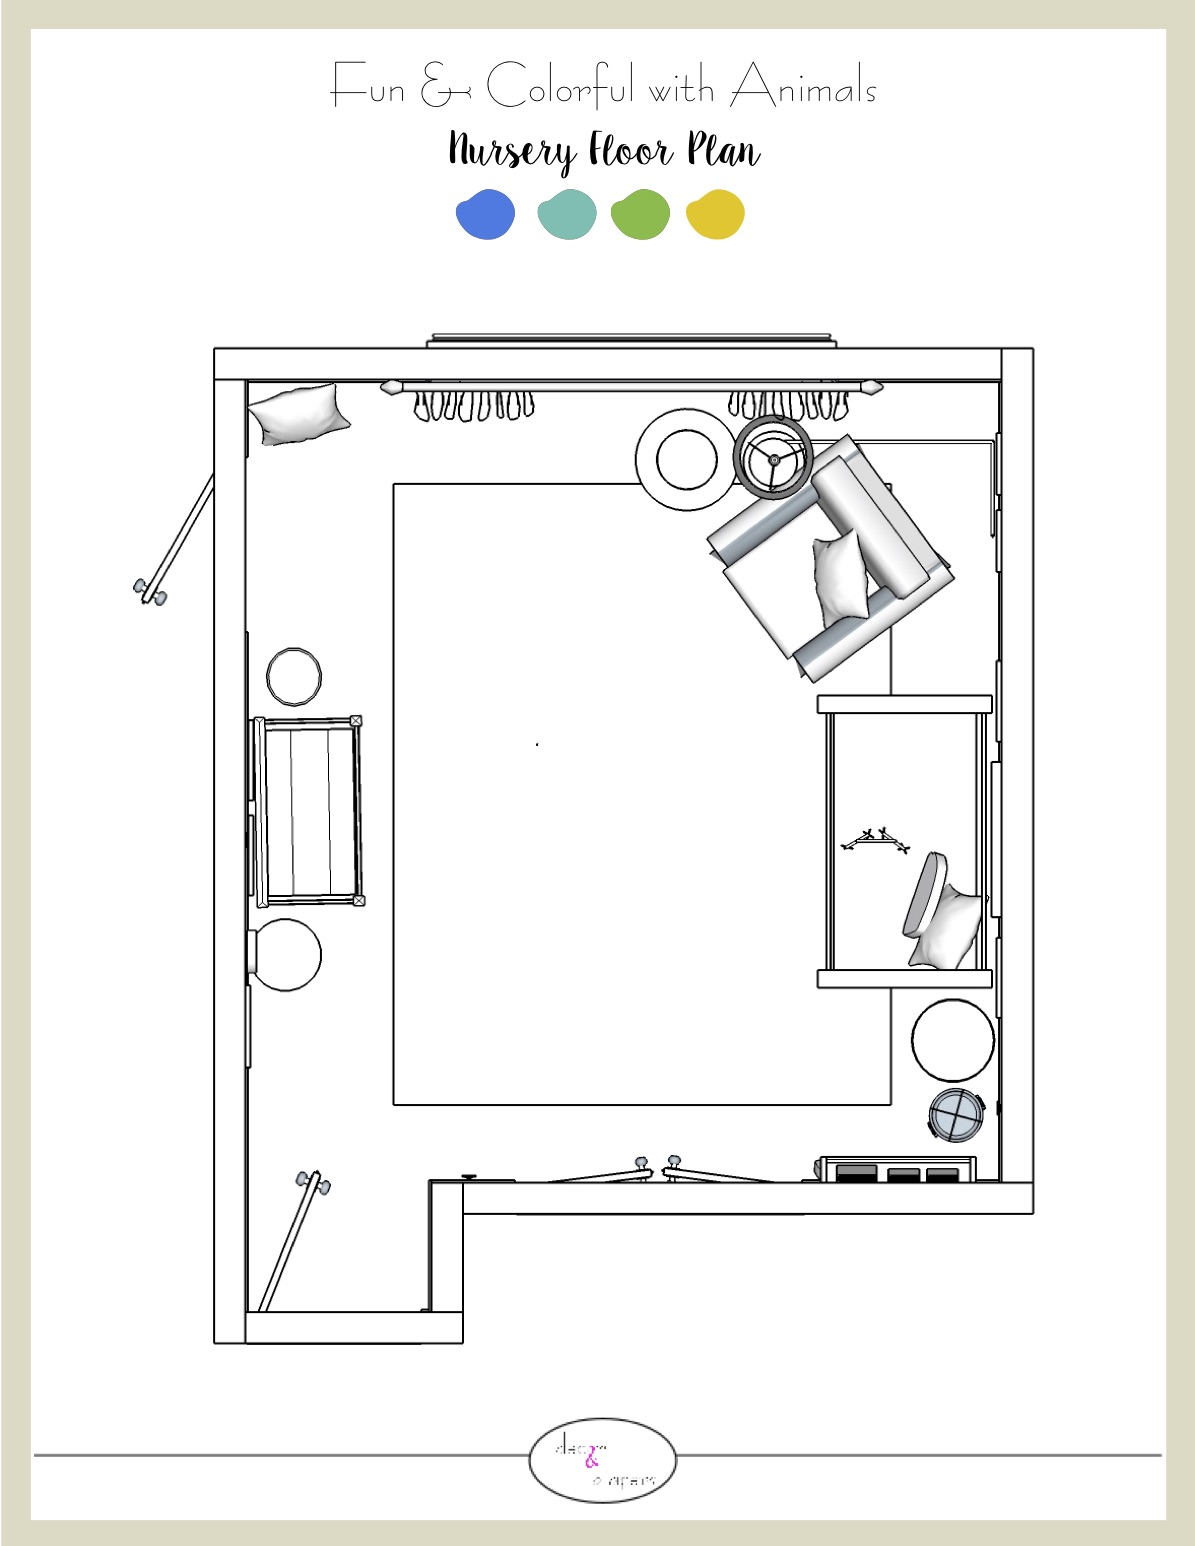 Floor Plan - A bird's eye view of your room.  Now you can see where each piece of furniture belongs in your room for a functional layout to enjoy with your family.